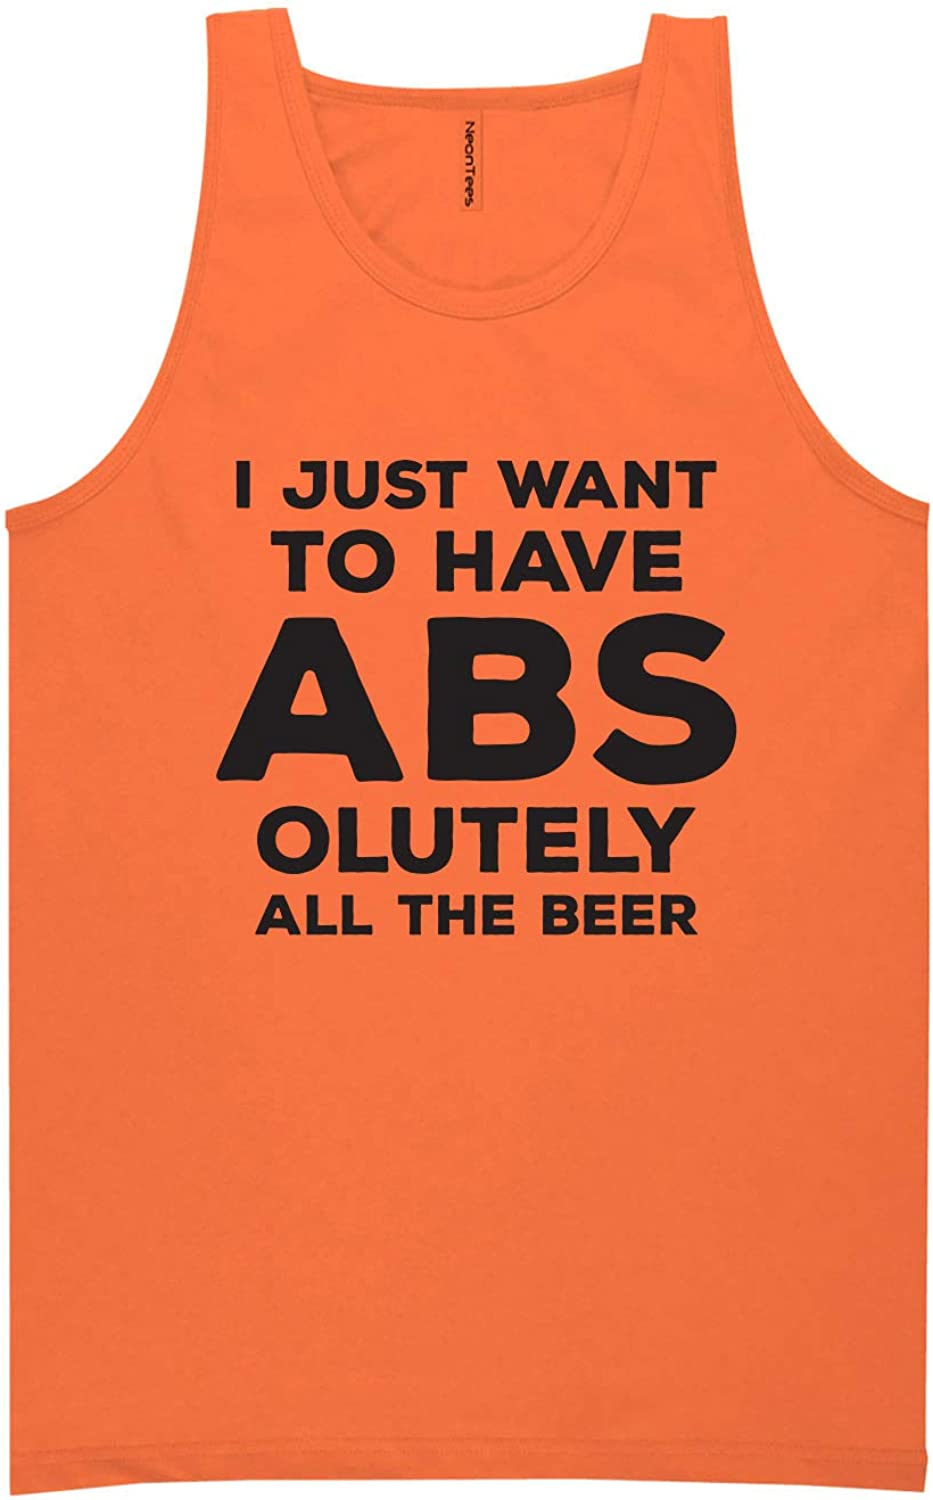 I Just Want ABS-olutely. Beer Neon Tank Top